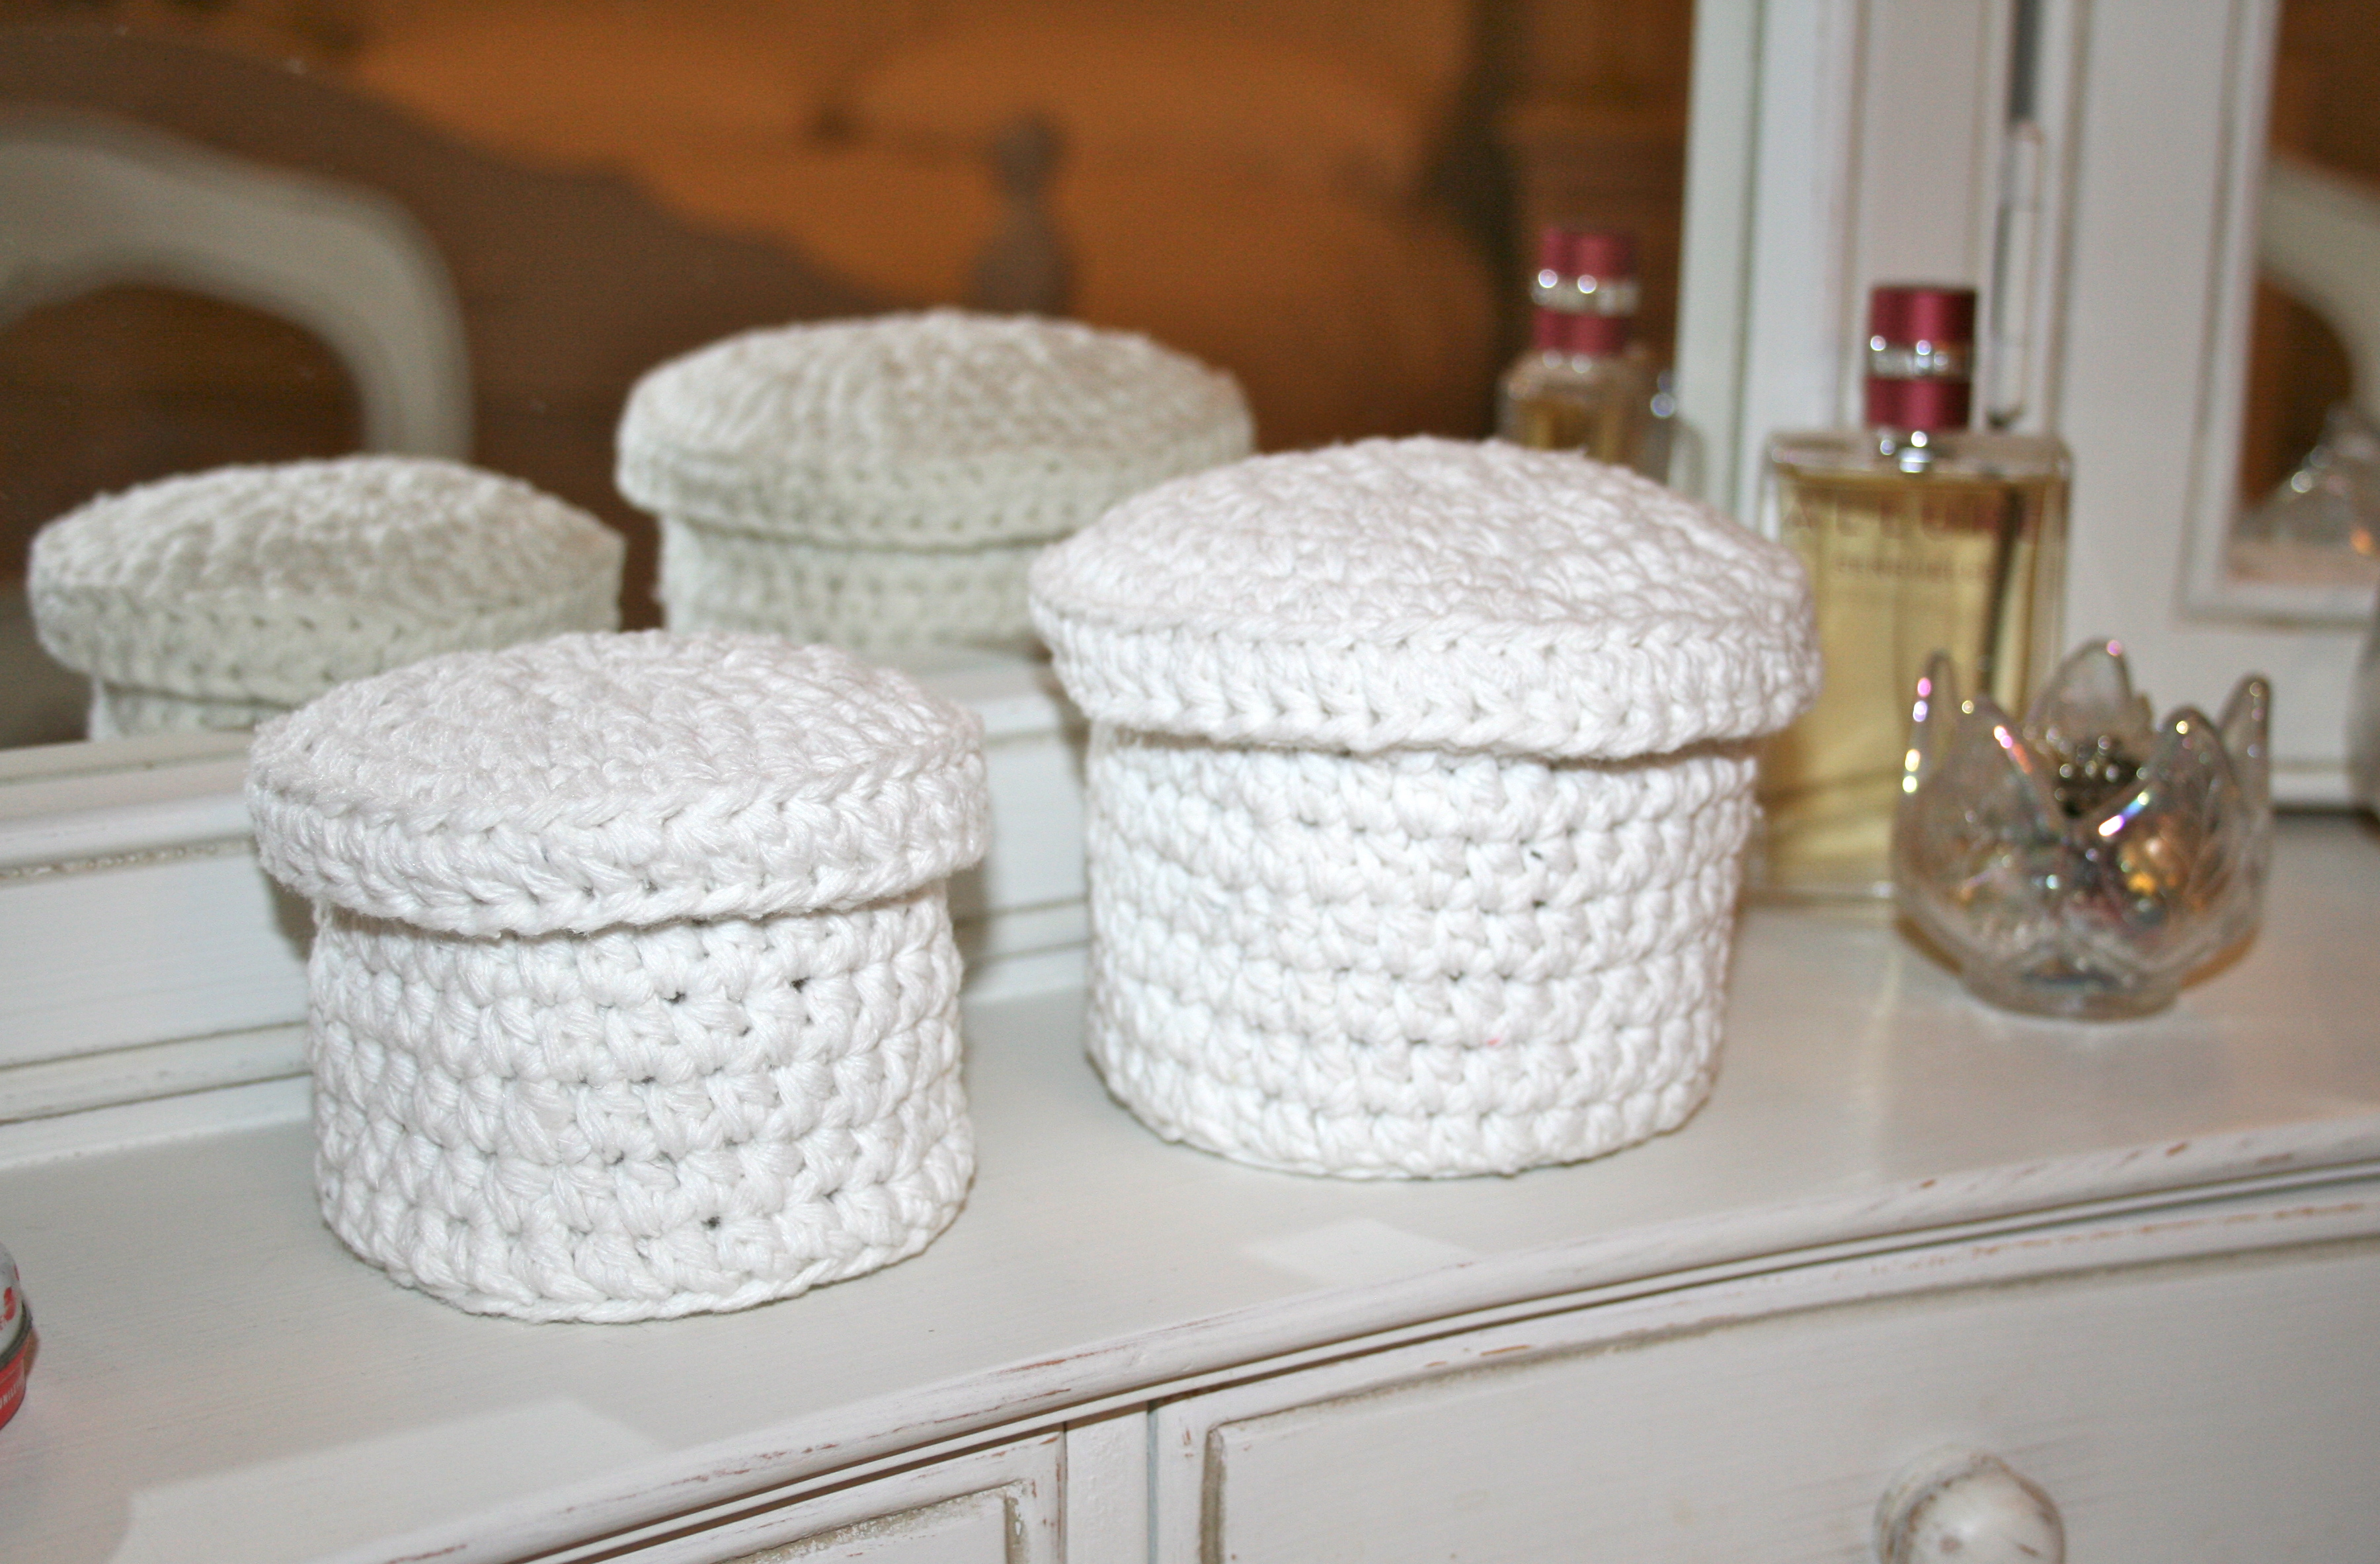 Crochet Christmas Gift Ideas – Storage Pots In Romantic White Cotton